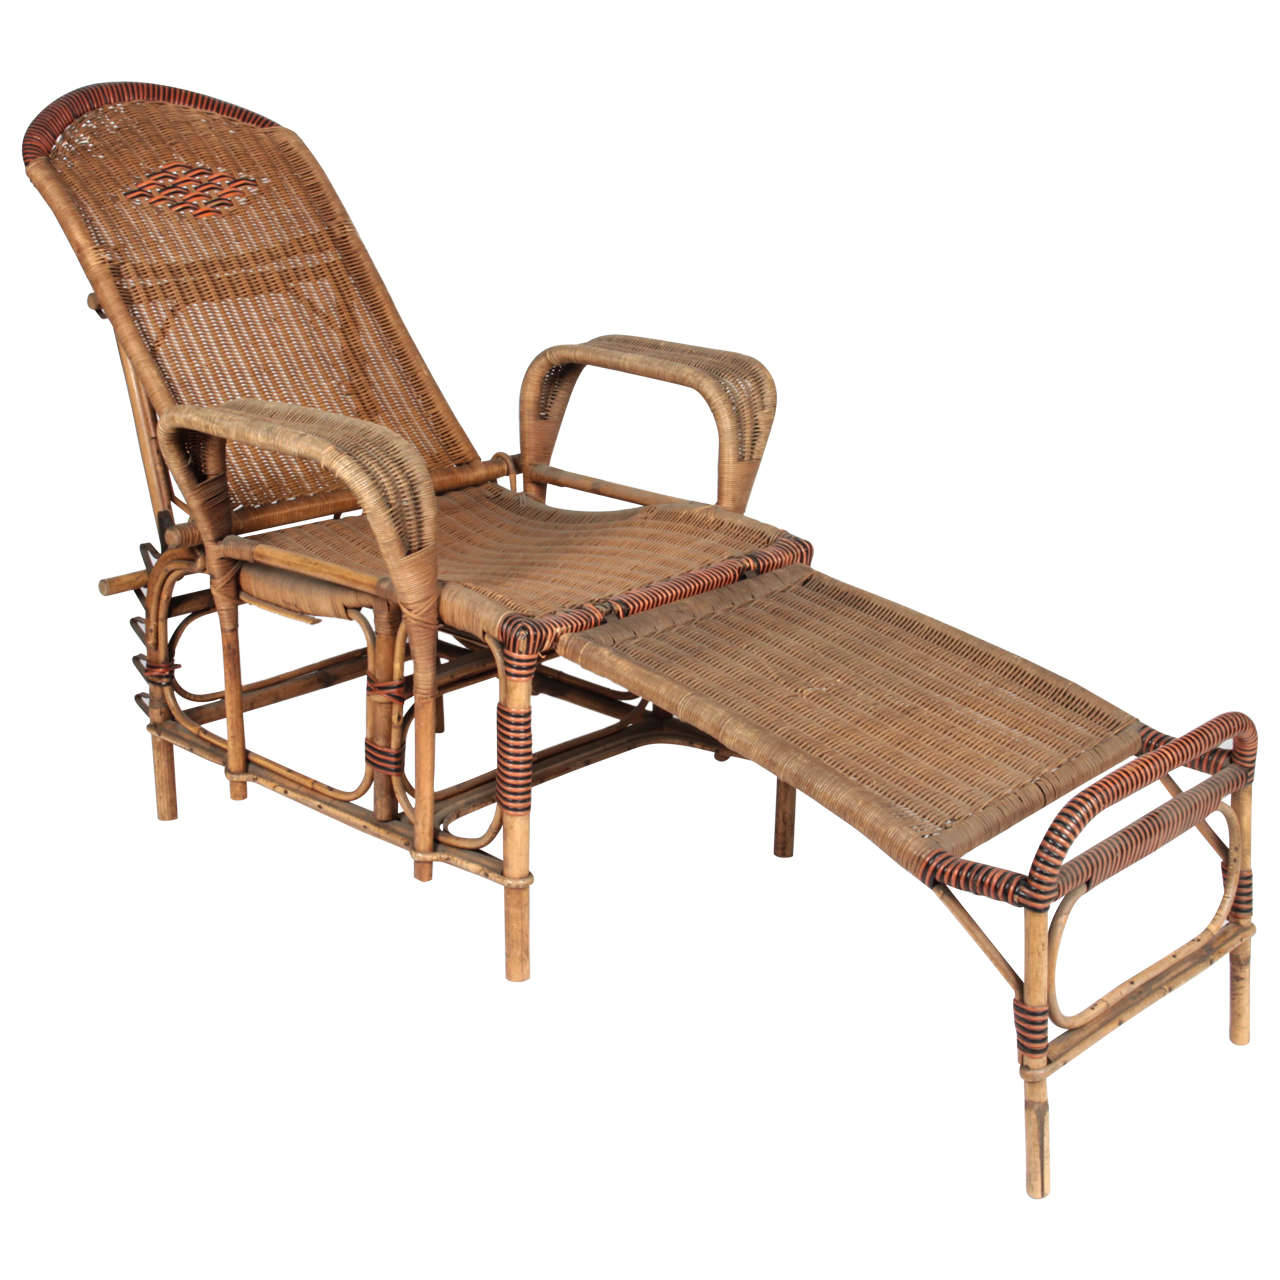 Genial Art Deco Reclining Wicker Lounge Chair With Detachable Foot Rest For Sale